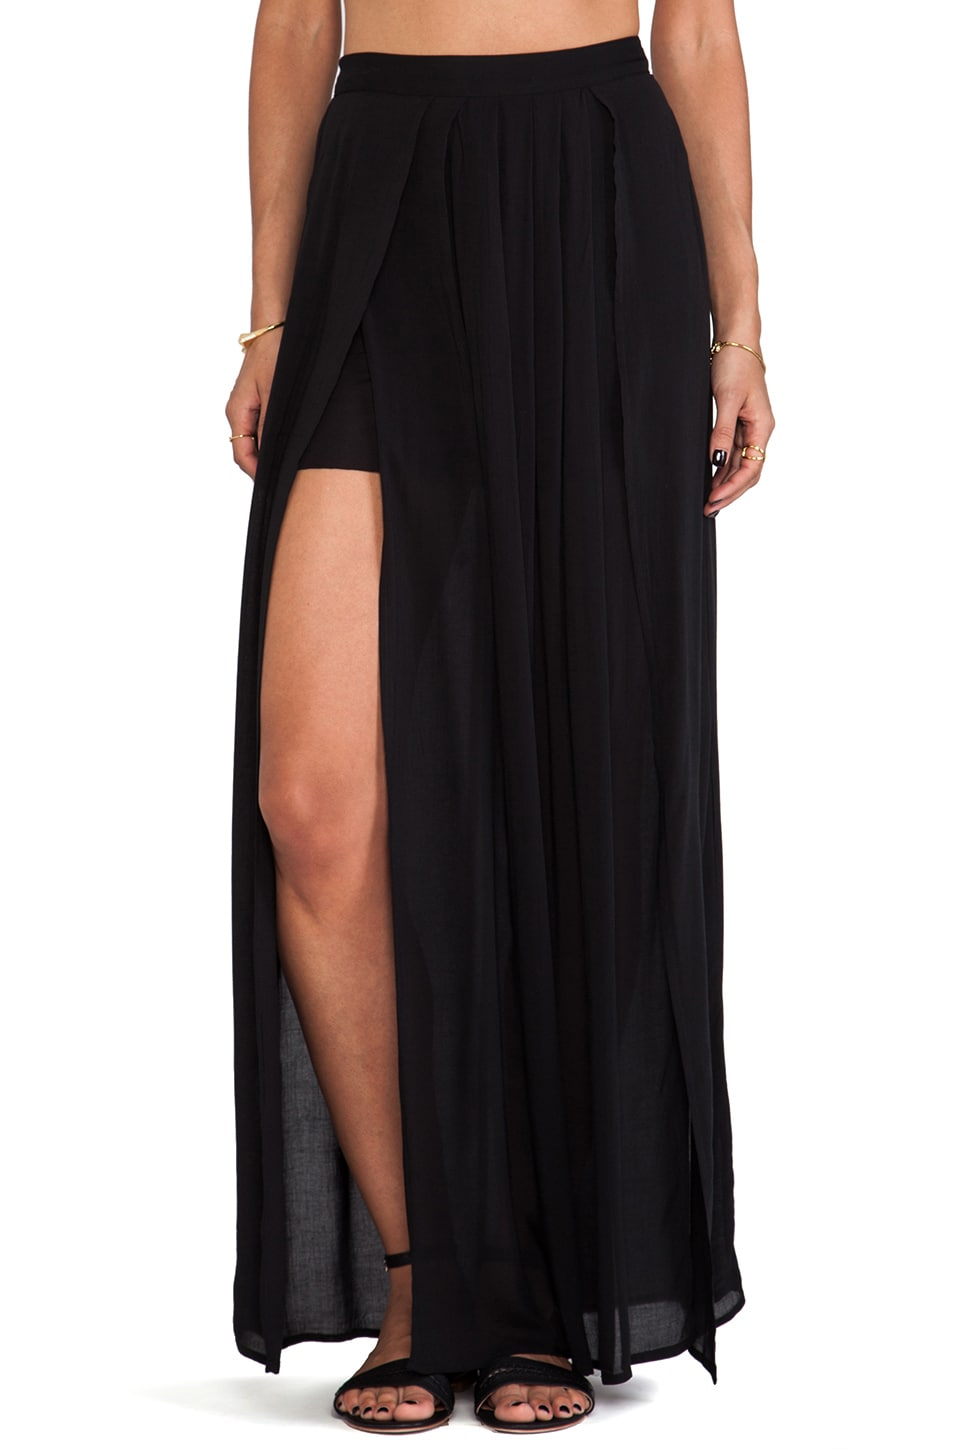 Bella Luxx Pleated Maxi Skirt in Black